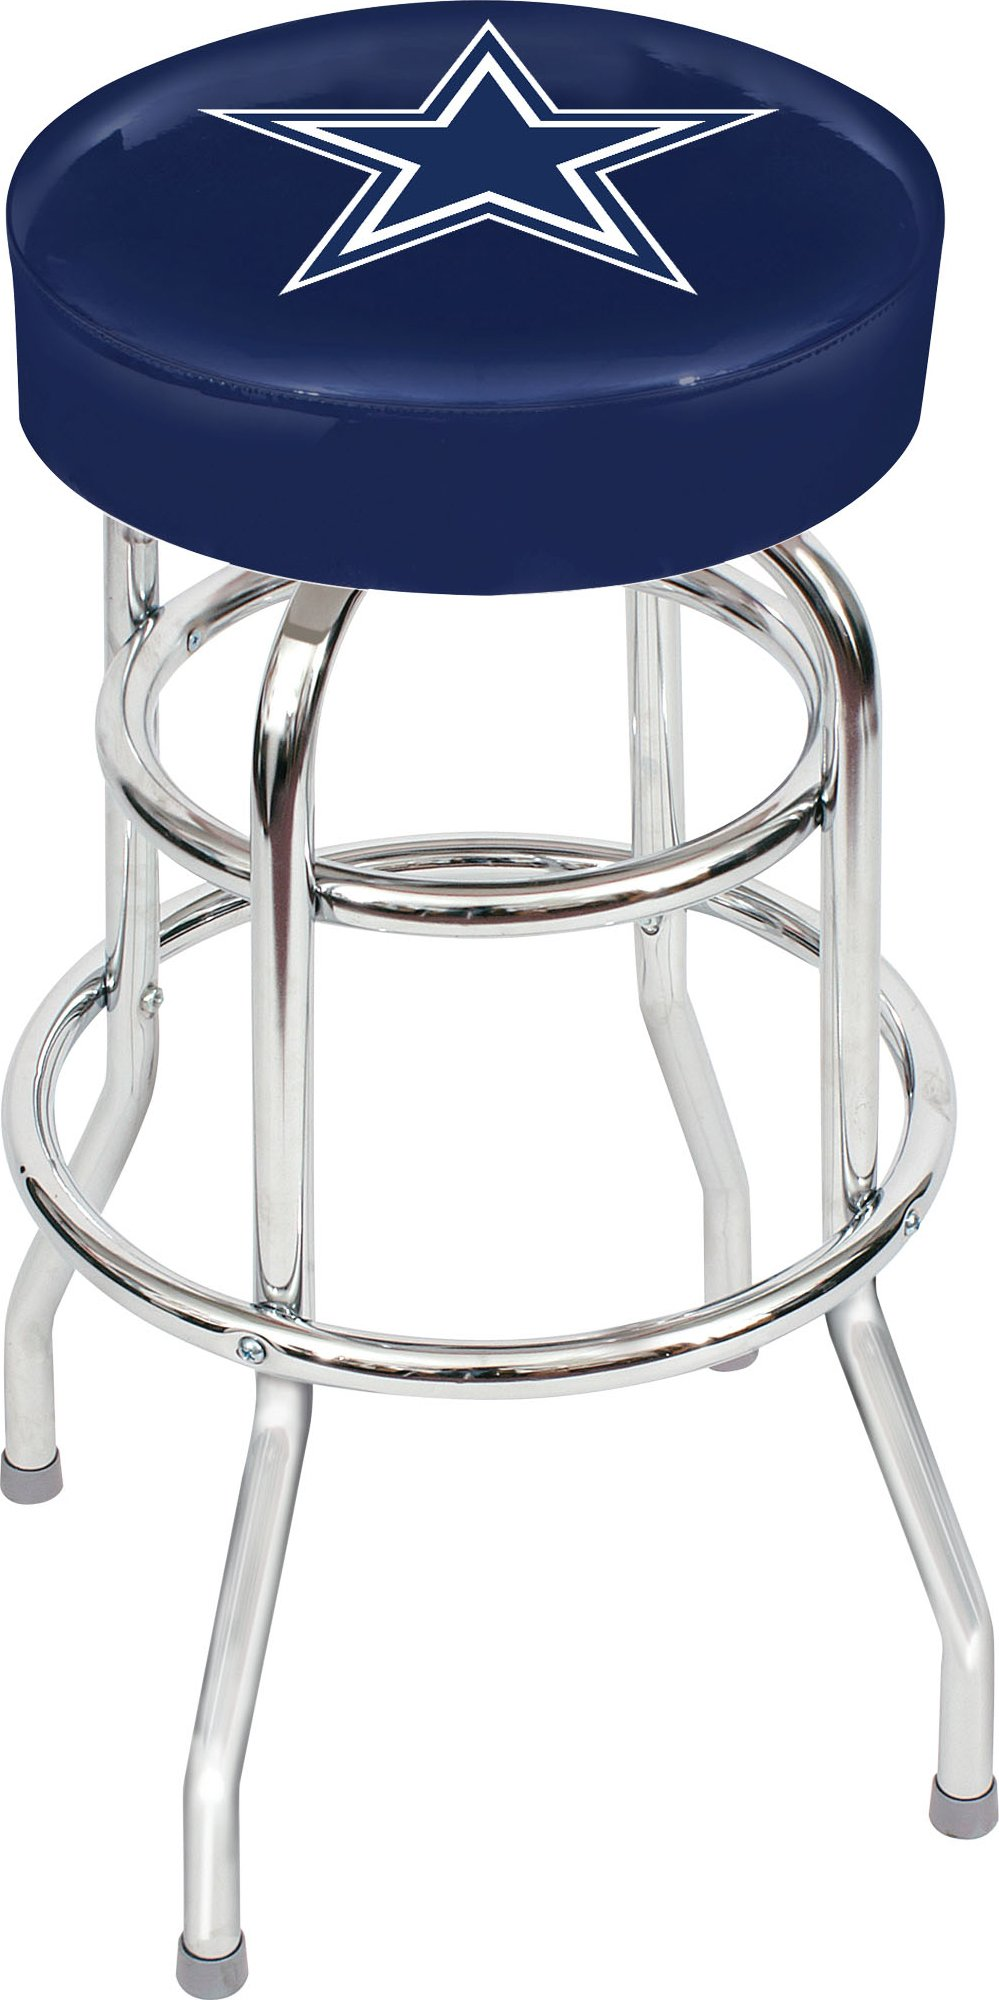 Imperial Officially Licensed NFL Furniture: Swivel Seat Bar Stool, Dallas Cowboys